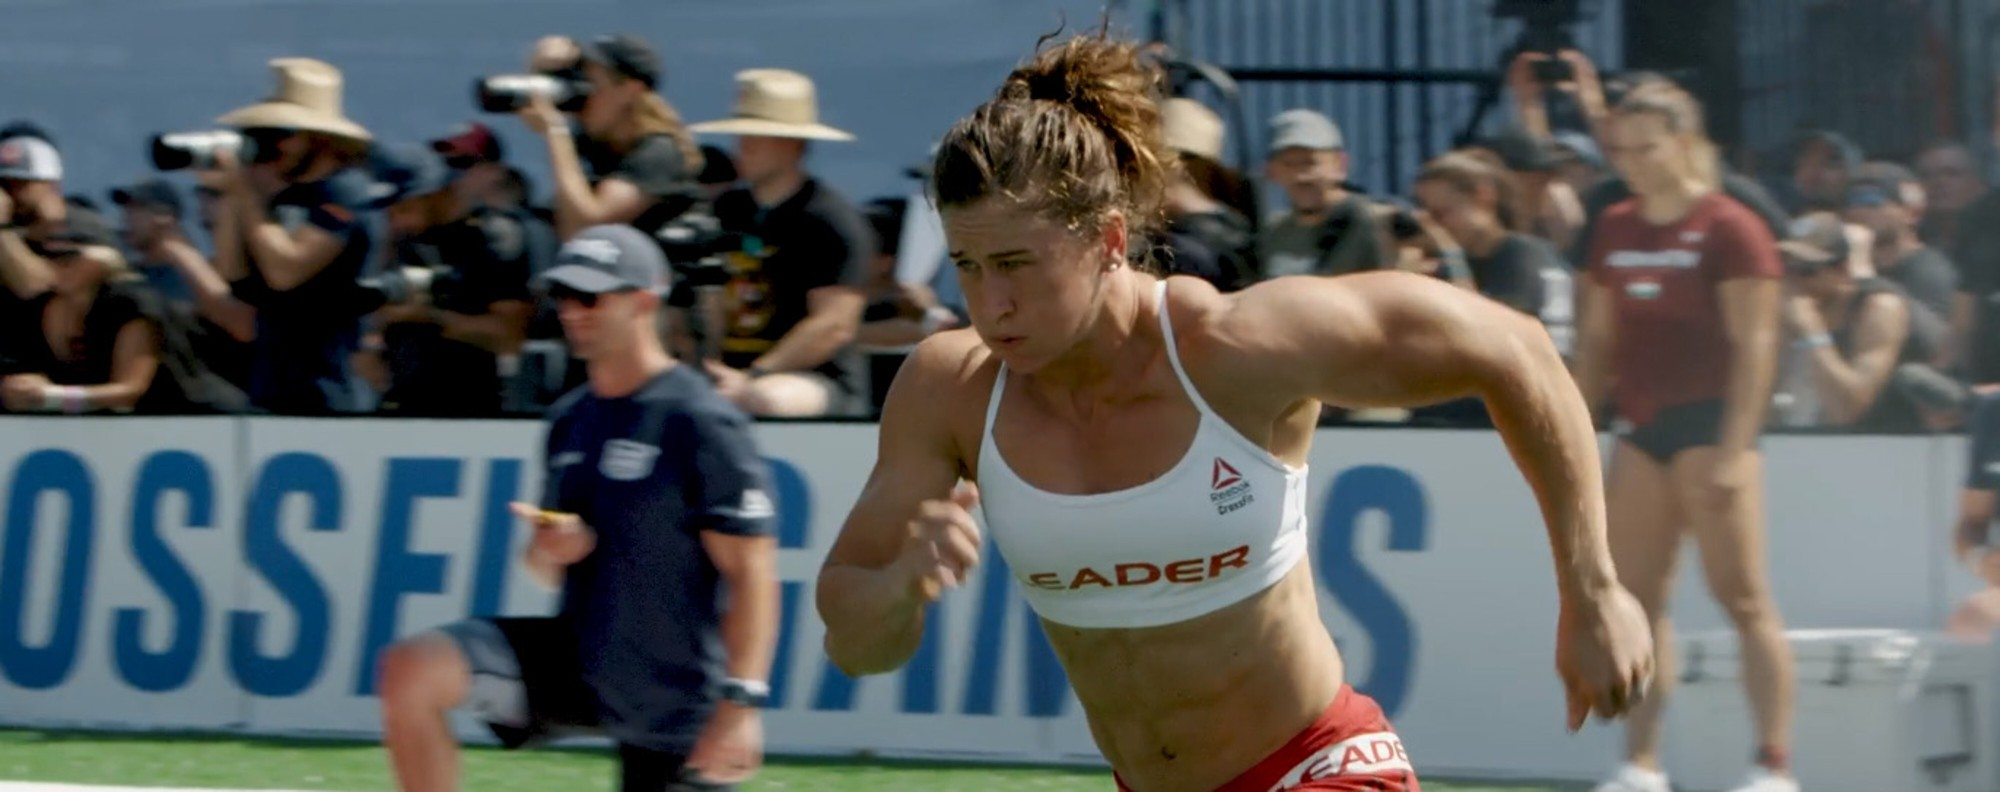 Tia-Clair Toomey, three times Fittest on Earth. Can she extend her winning streak to four? Photo: CrossFit Inc.